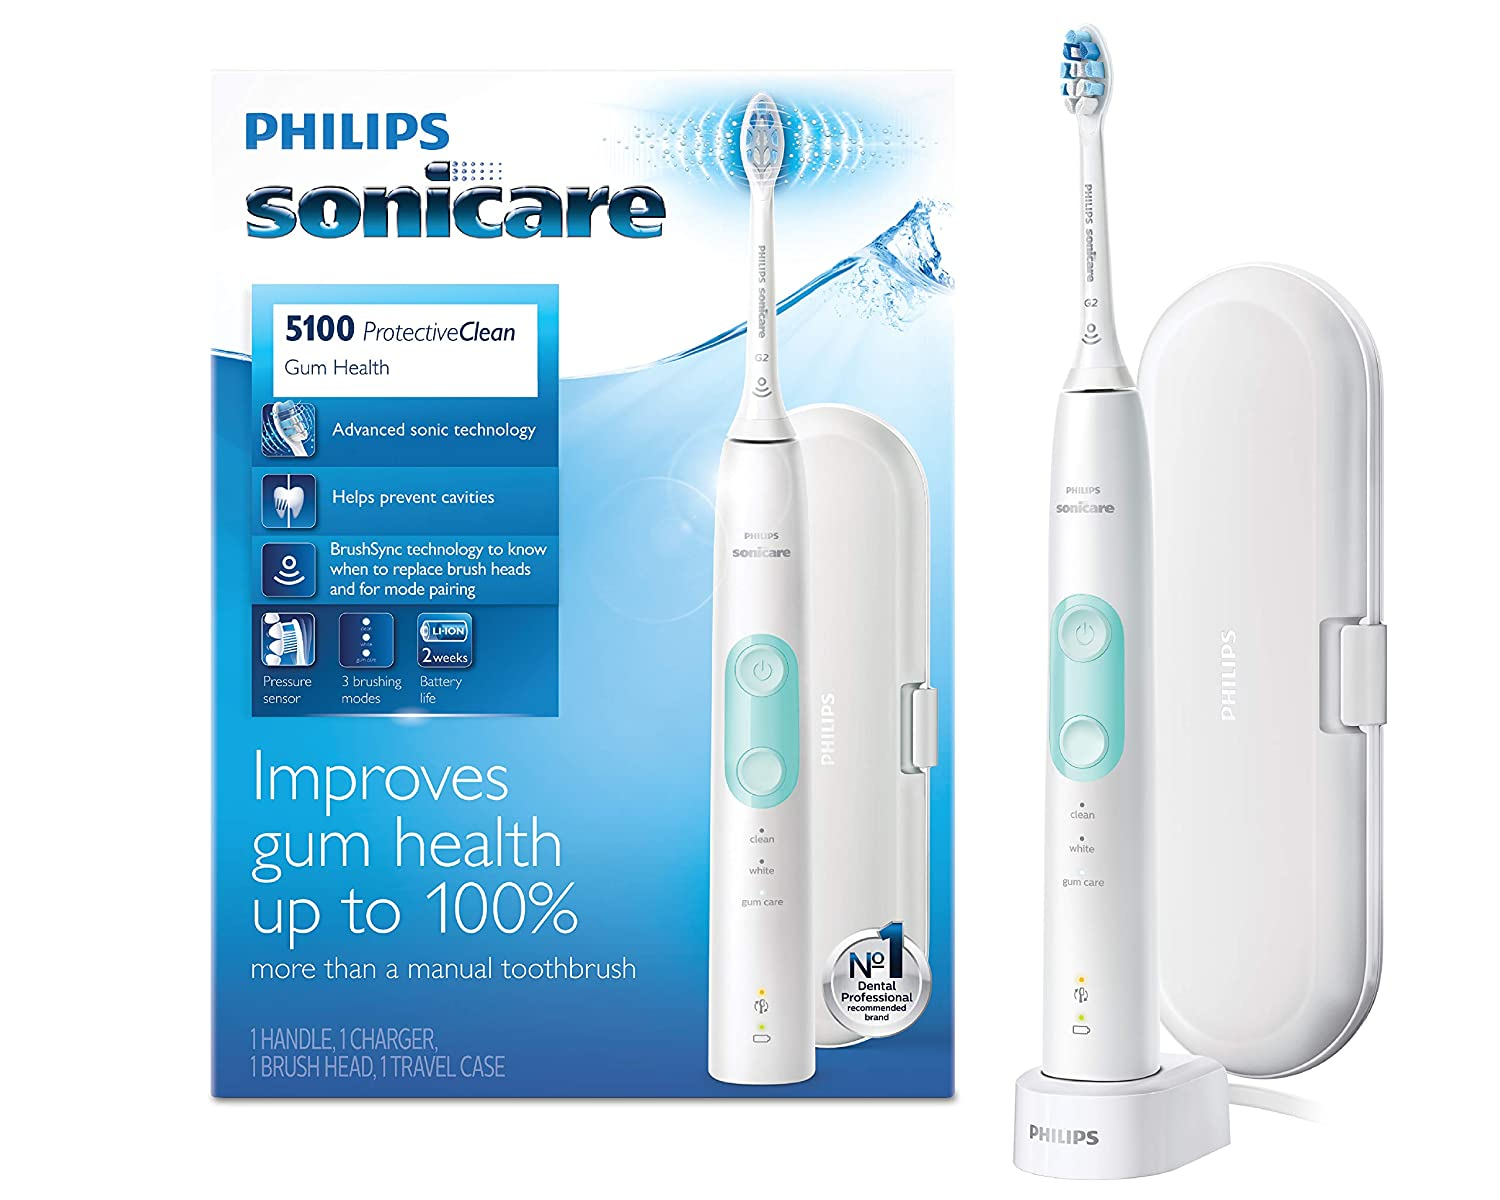 Philips Sonicare ProtectiveClean 5100 Electric Rechargeable Toothbrush, Gum Health, White